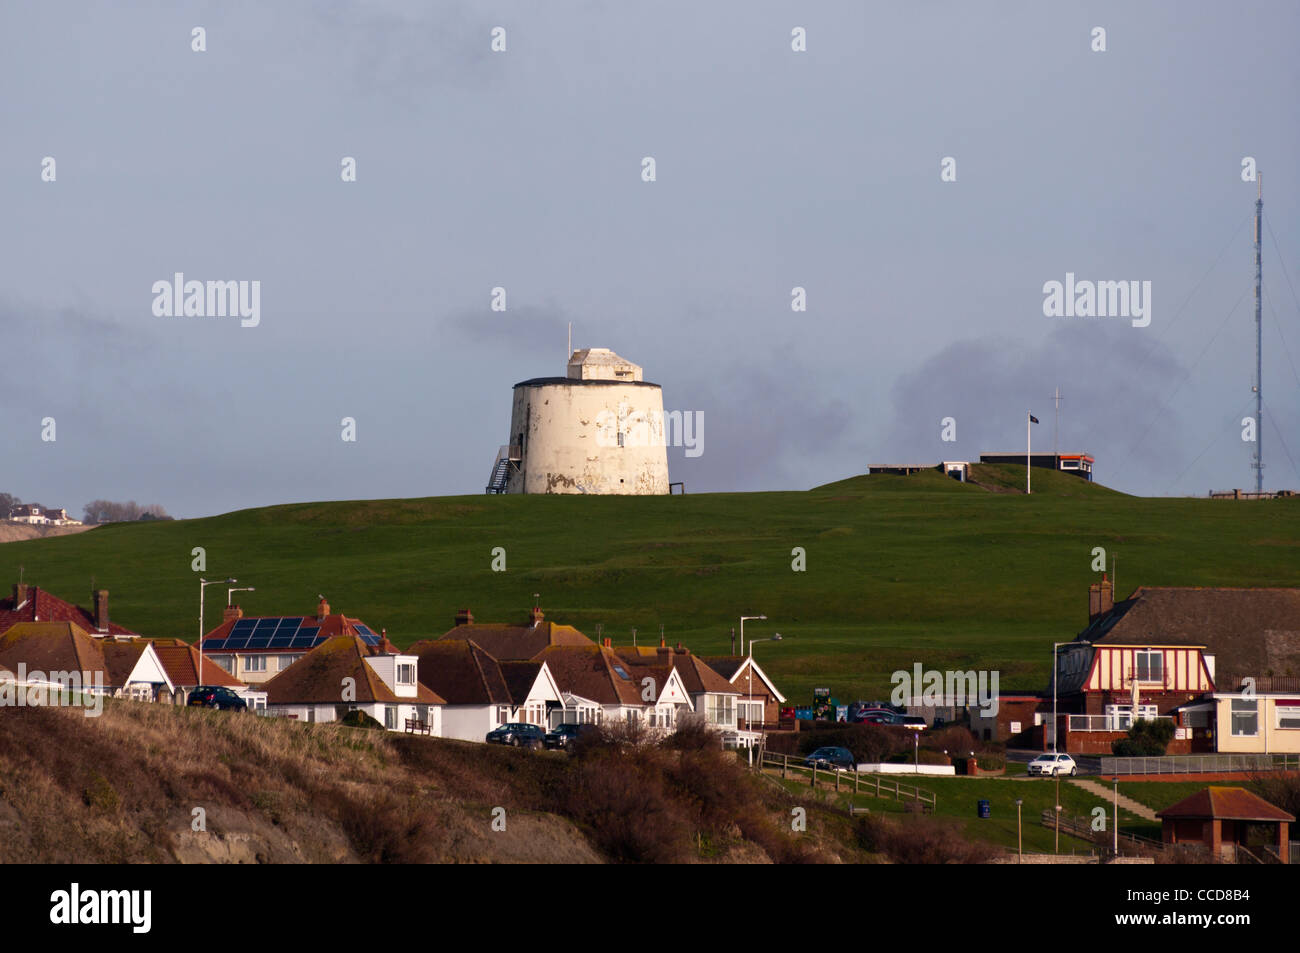 Martello Tower Number Three 3 On The Clifftops at The Coastal Town Of Folkestone Kent UK Towns Towers - Stock Image